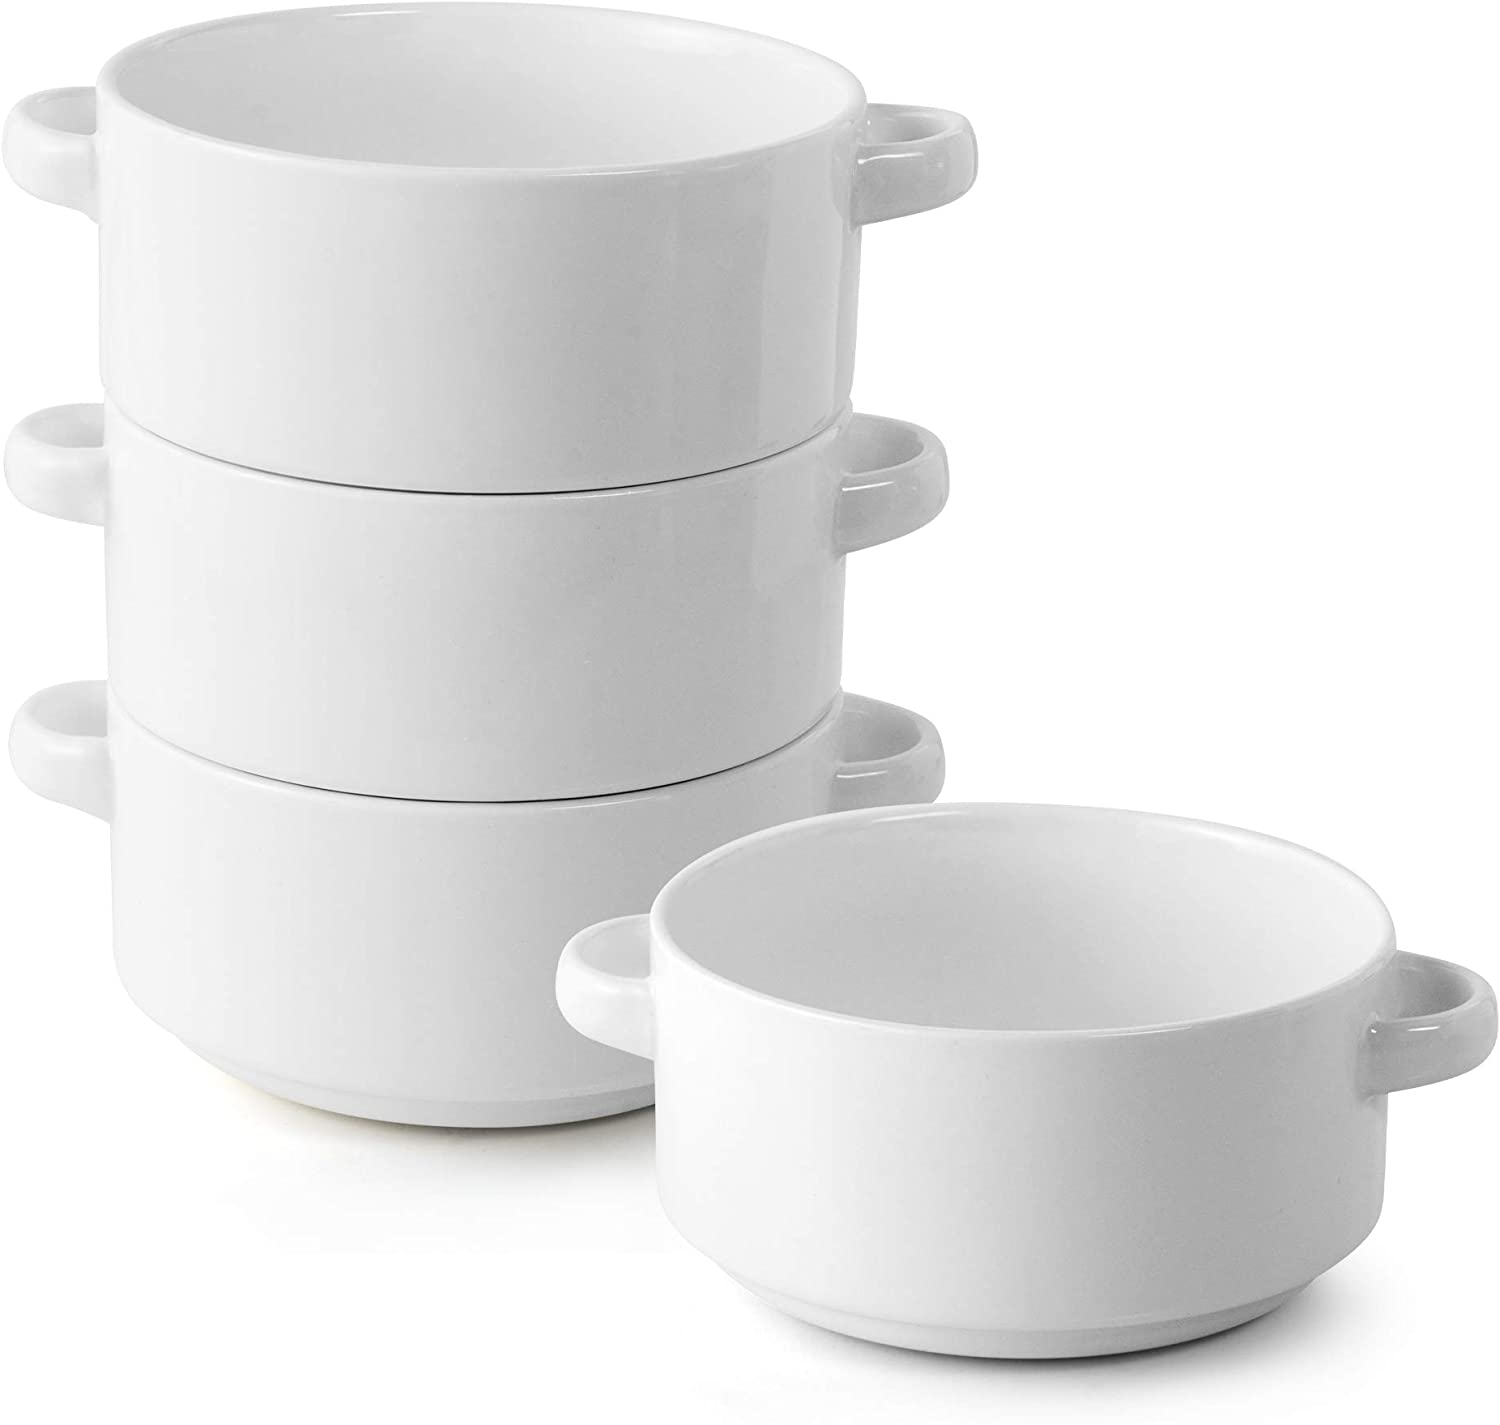 Porcelain Soup Bowls with Handles, Set of 4, 20 Ounce Ceramic Crocks for French Onion Soup, Cereal, Oatmeal or Chili, Stackable Bowls, Large Serving Crocks are Microwave and Oven Safe (White)